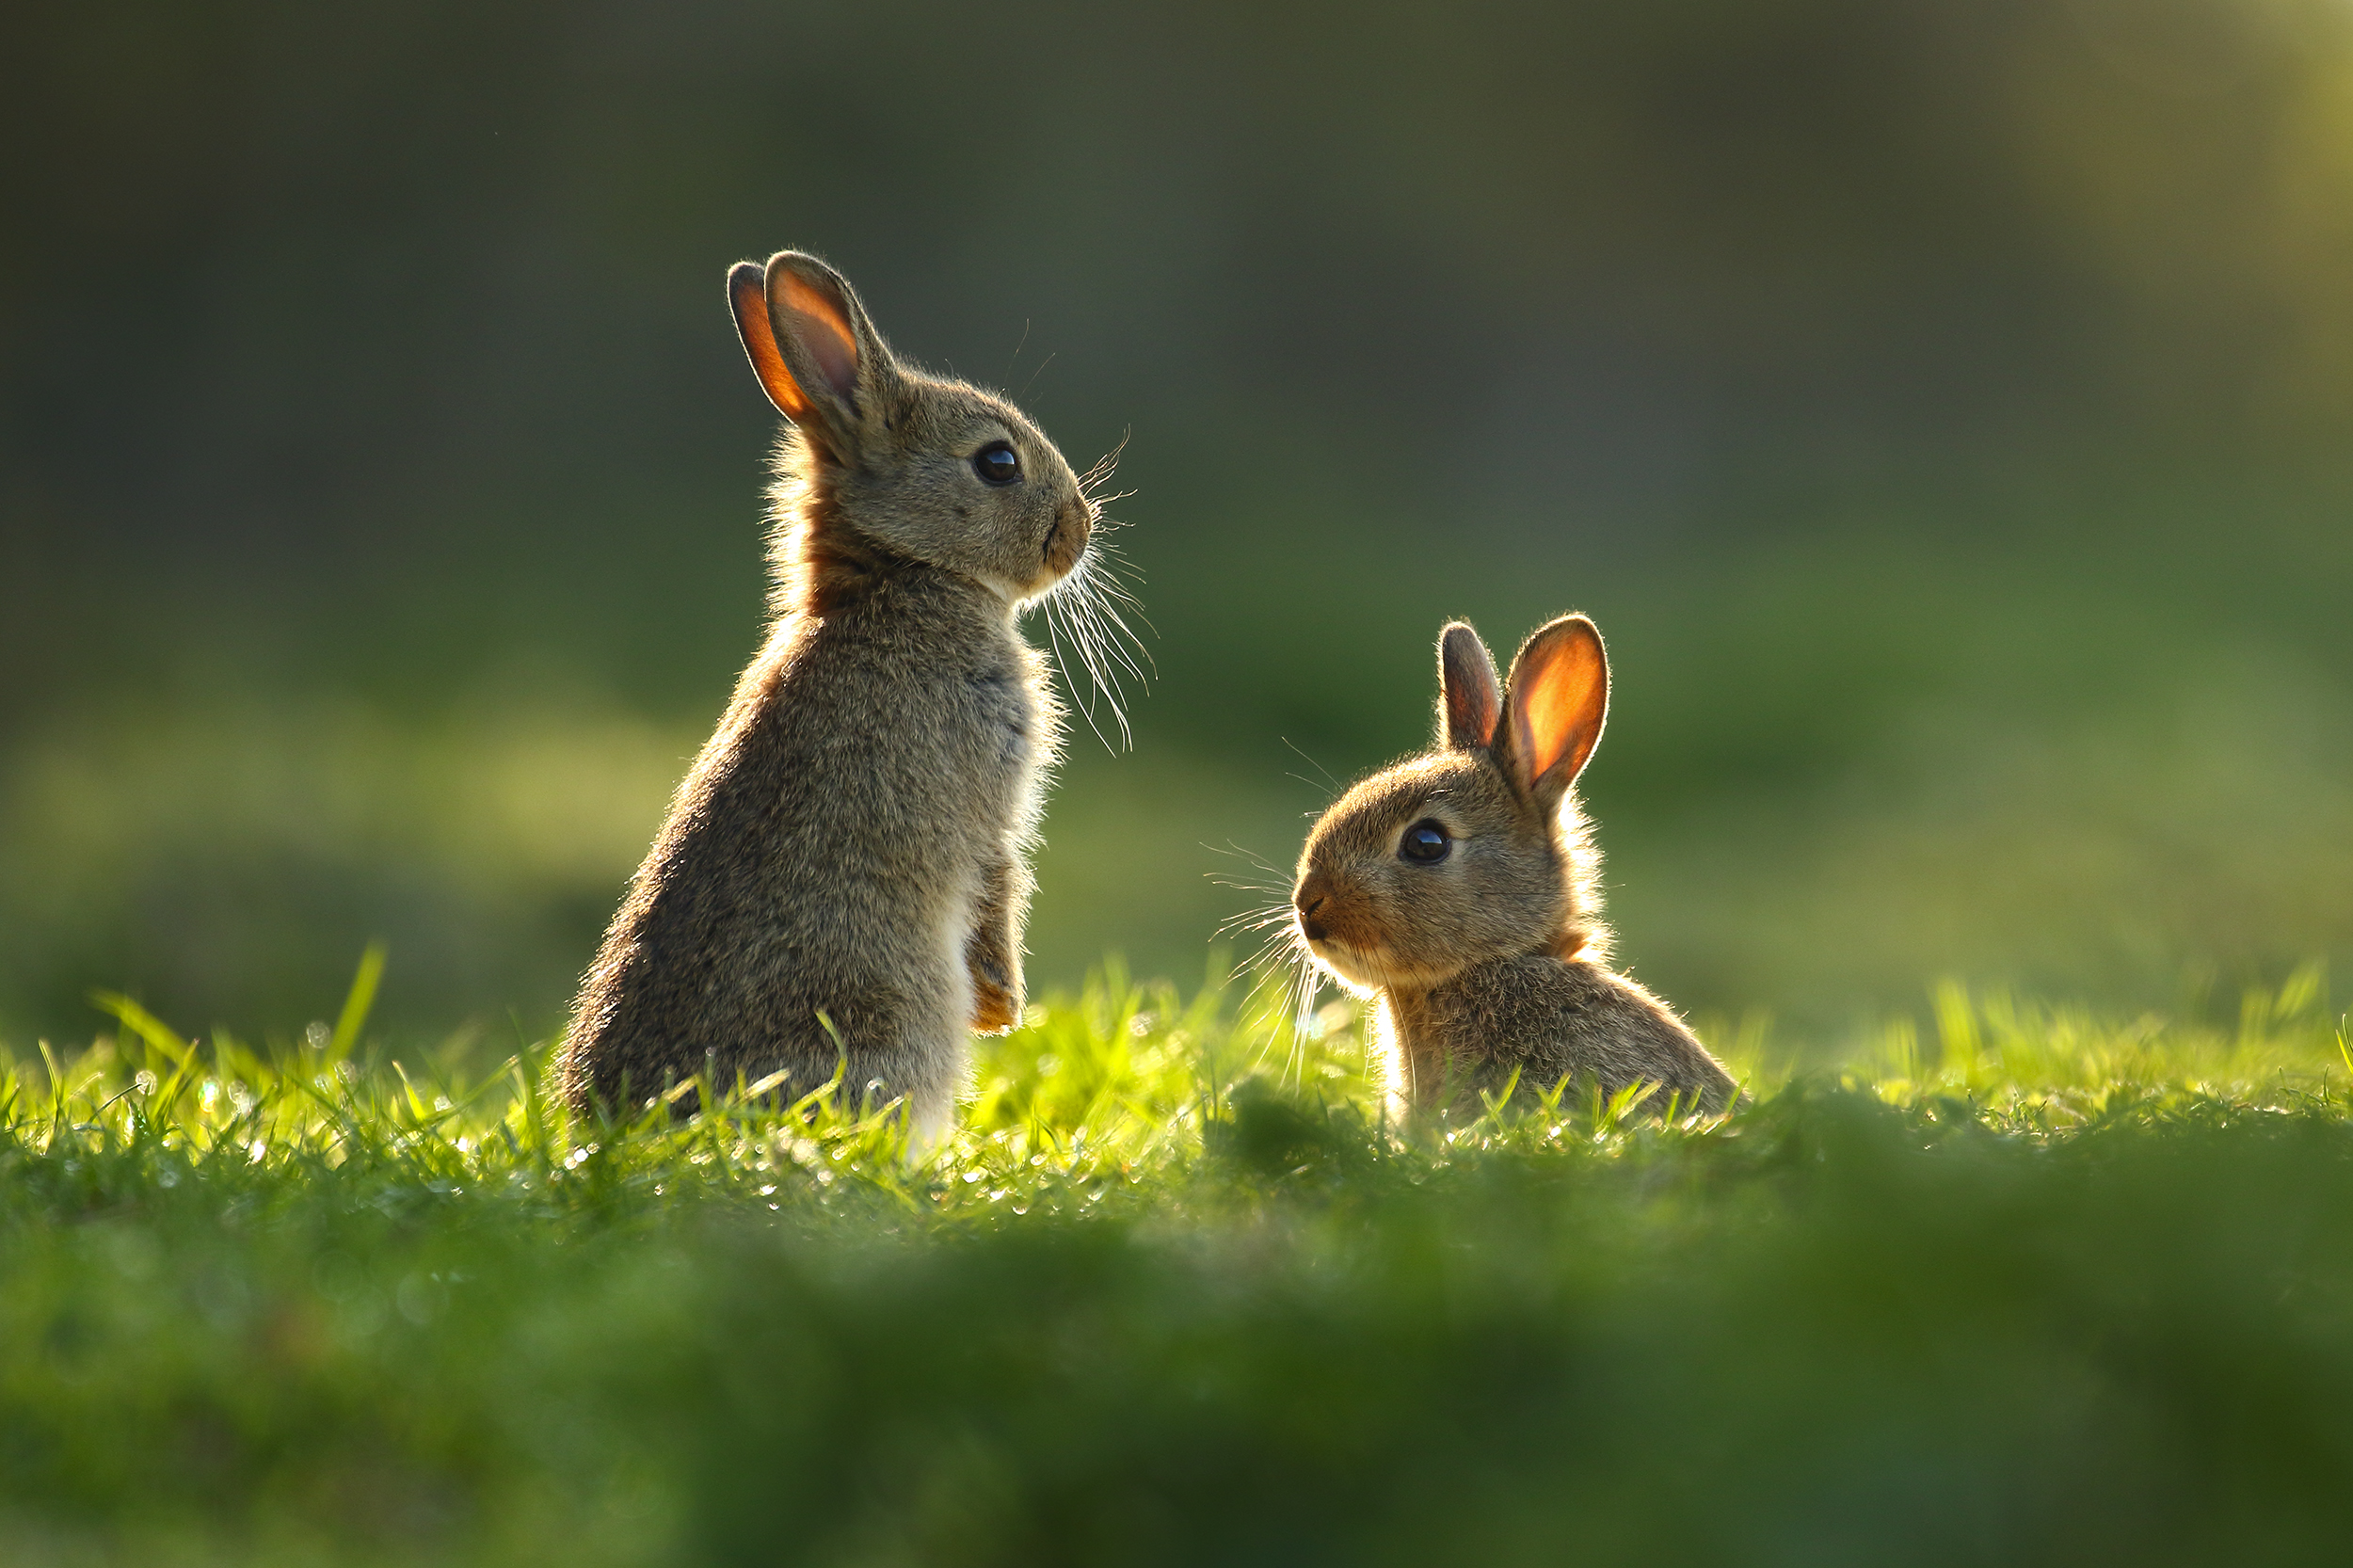 Backlit_Bunnies.jpg